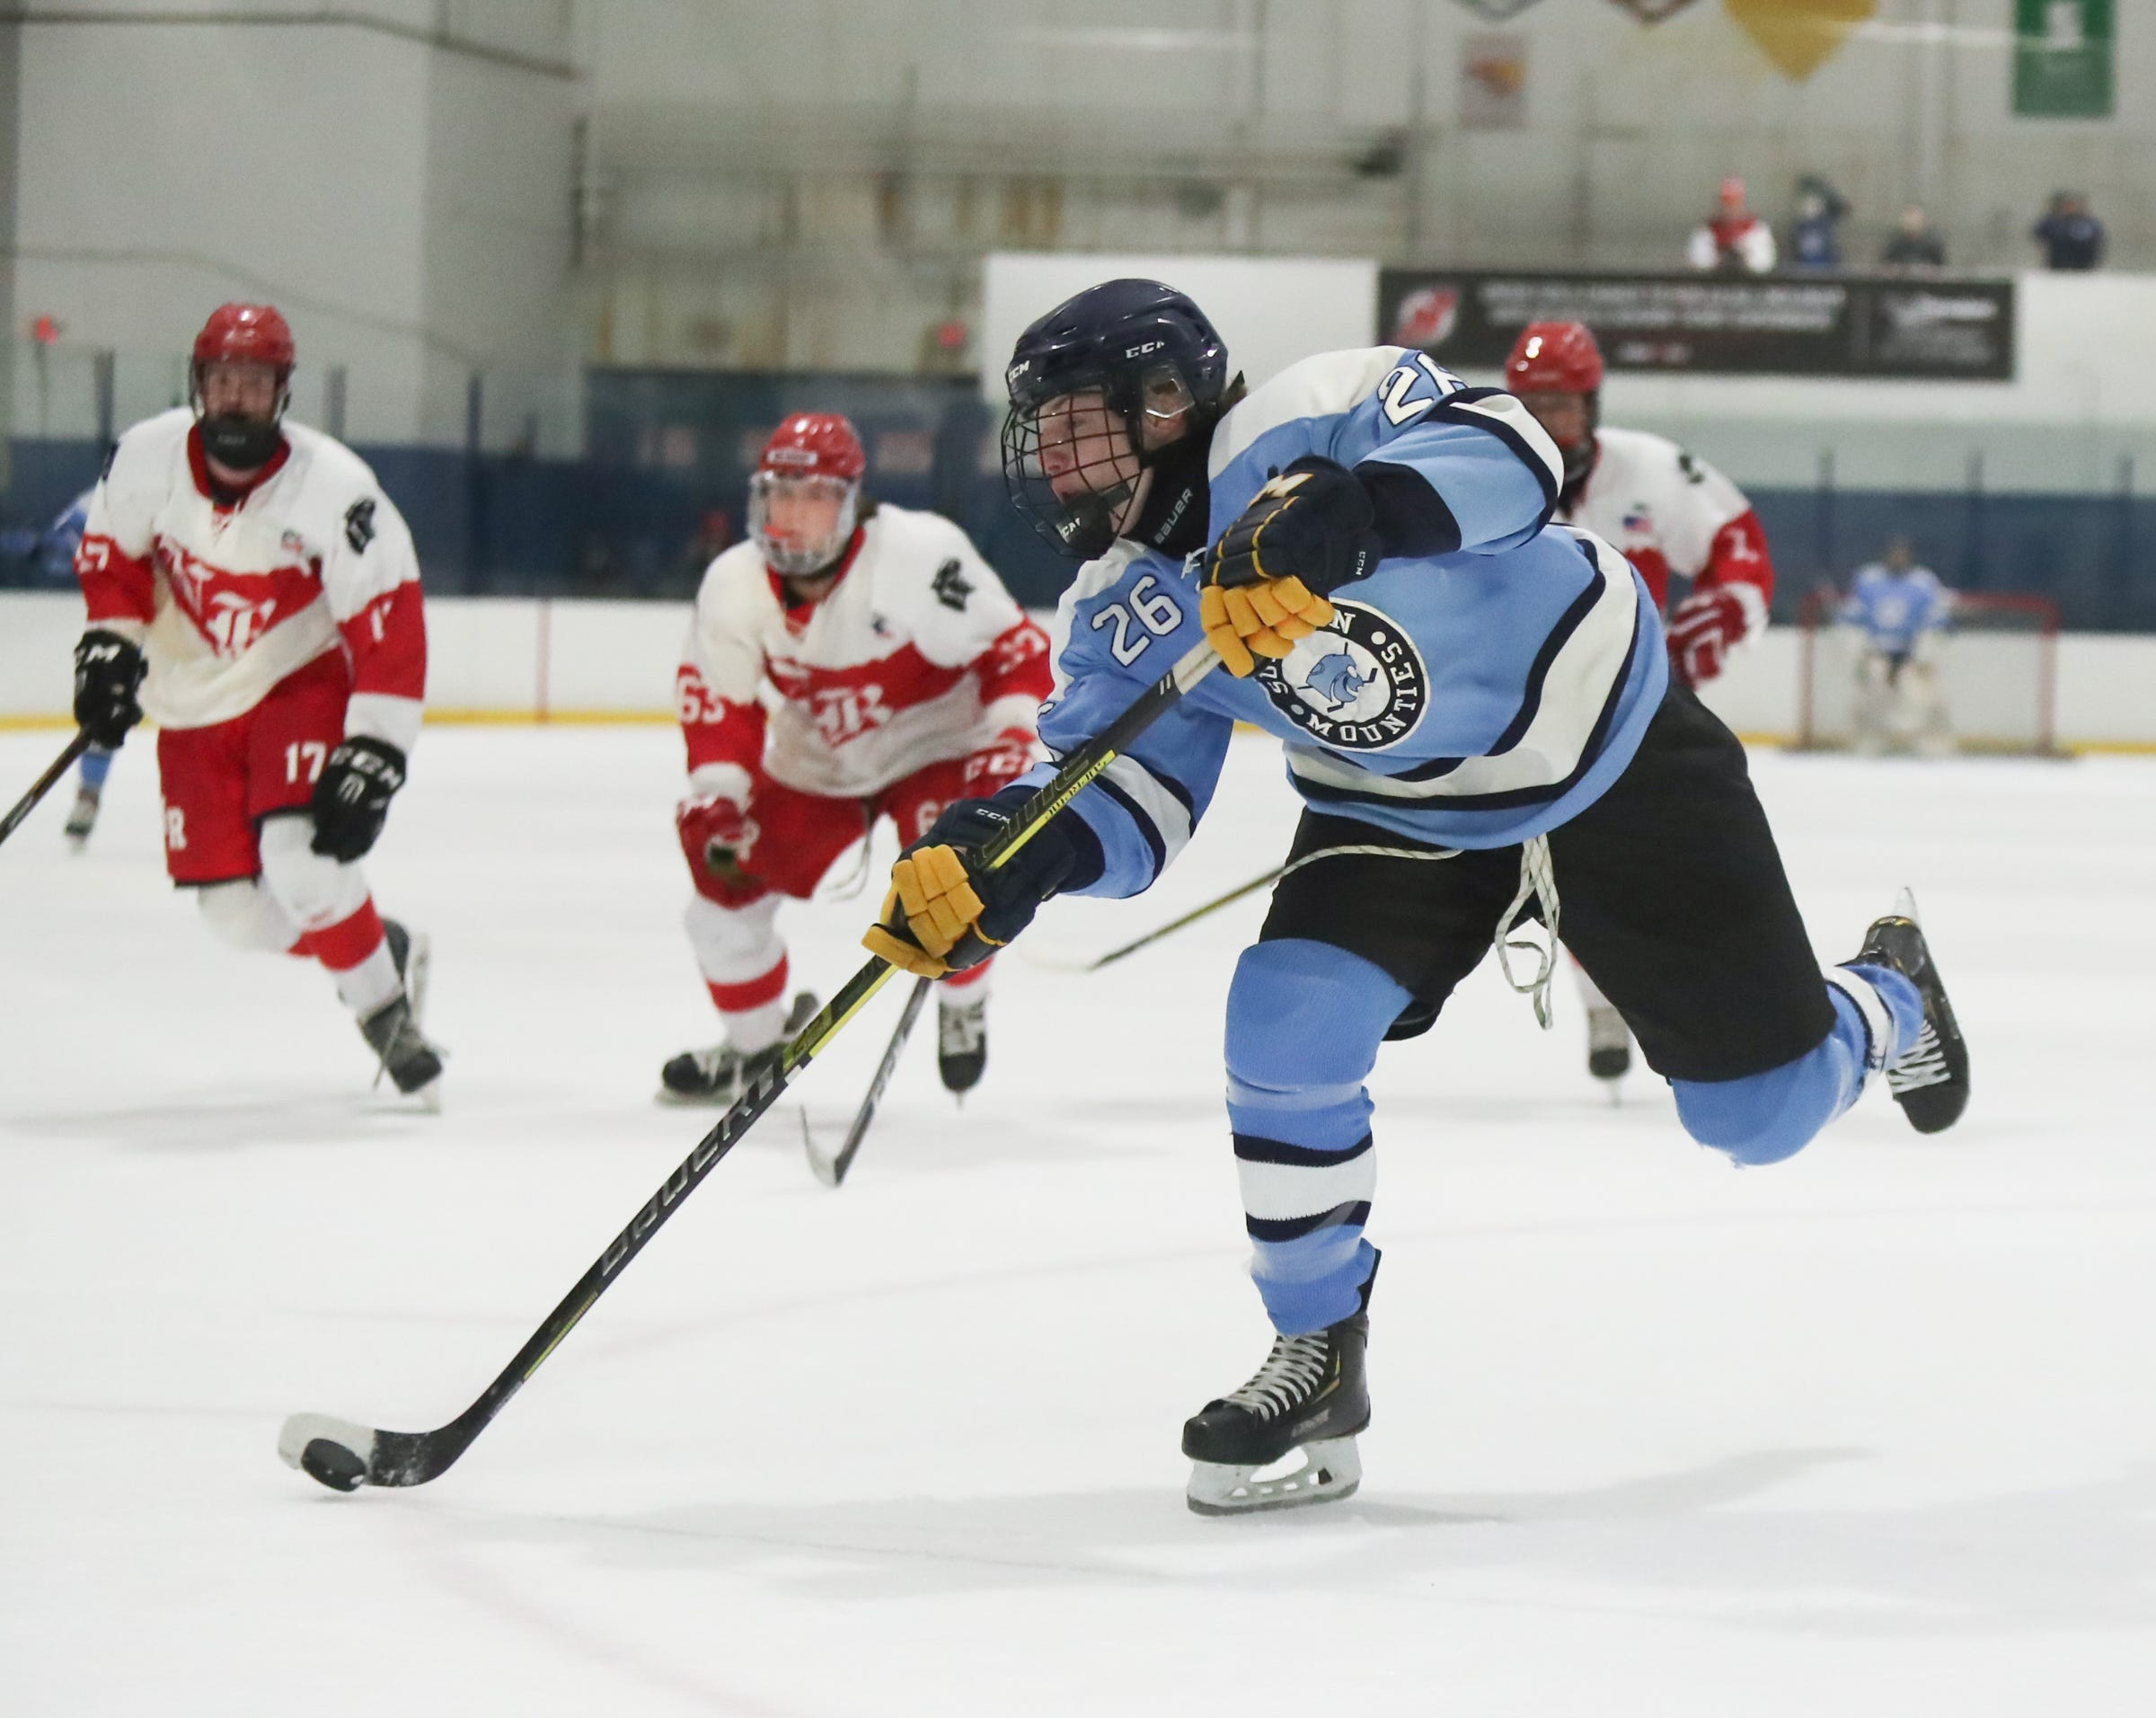 Hockey  Family ties have long been a part of the Suffern tradition Ryan  Schelling and Tom McCarren were destined to play hockey for the Mounties 28904e408